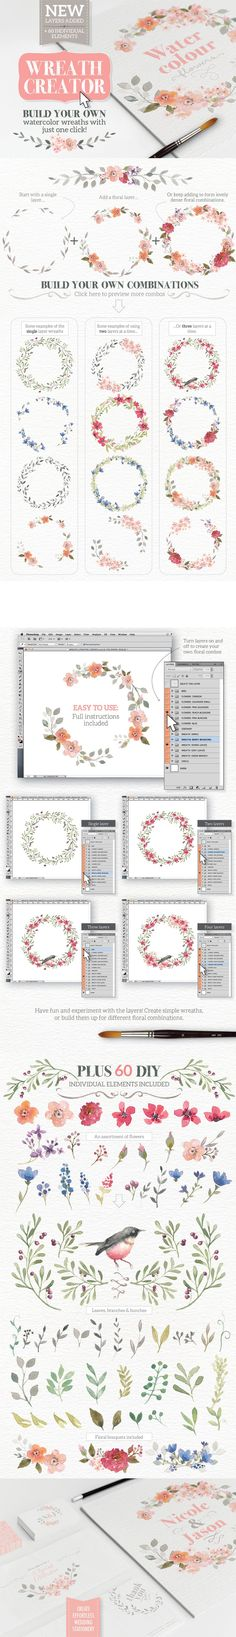 The Essential, Creative Design Arsenal (1000s of Best-Selling Resources) Just $29 - Watercolour Wreath Creator